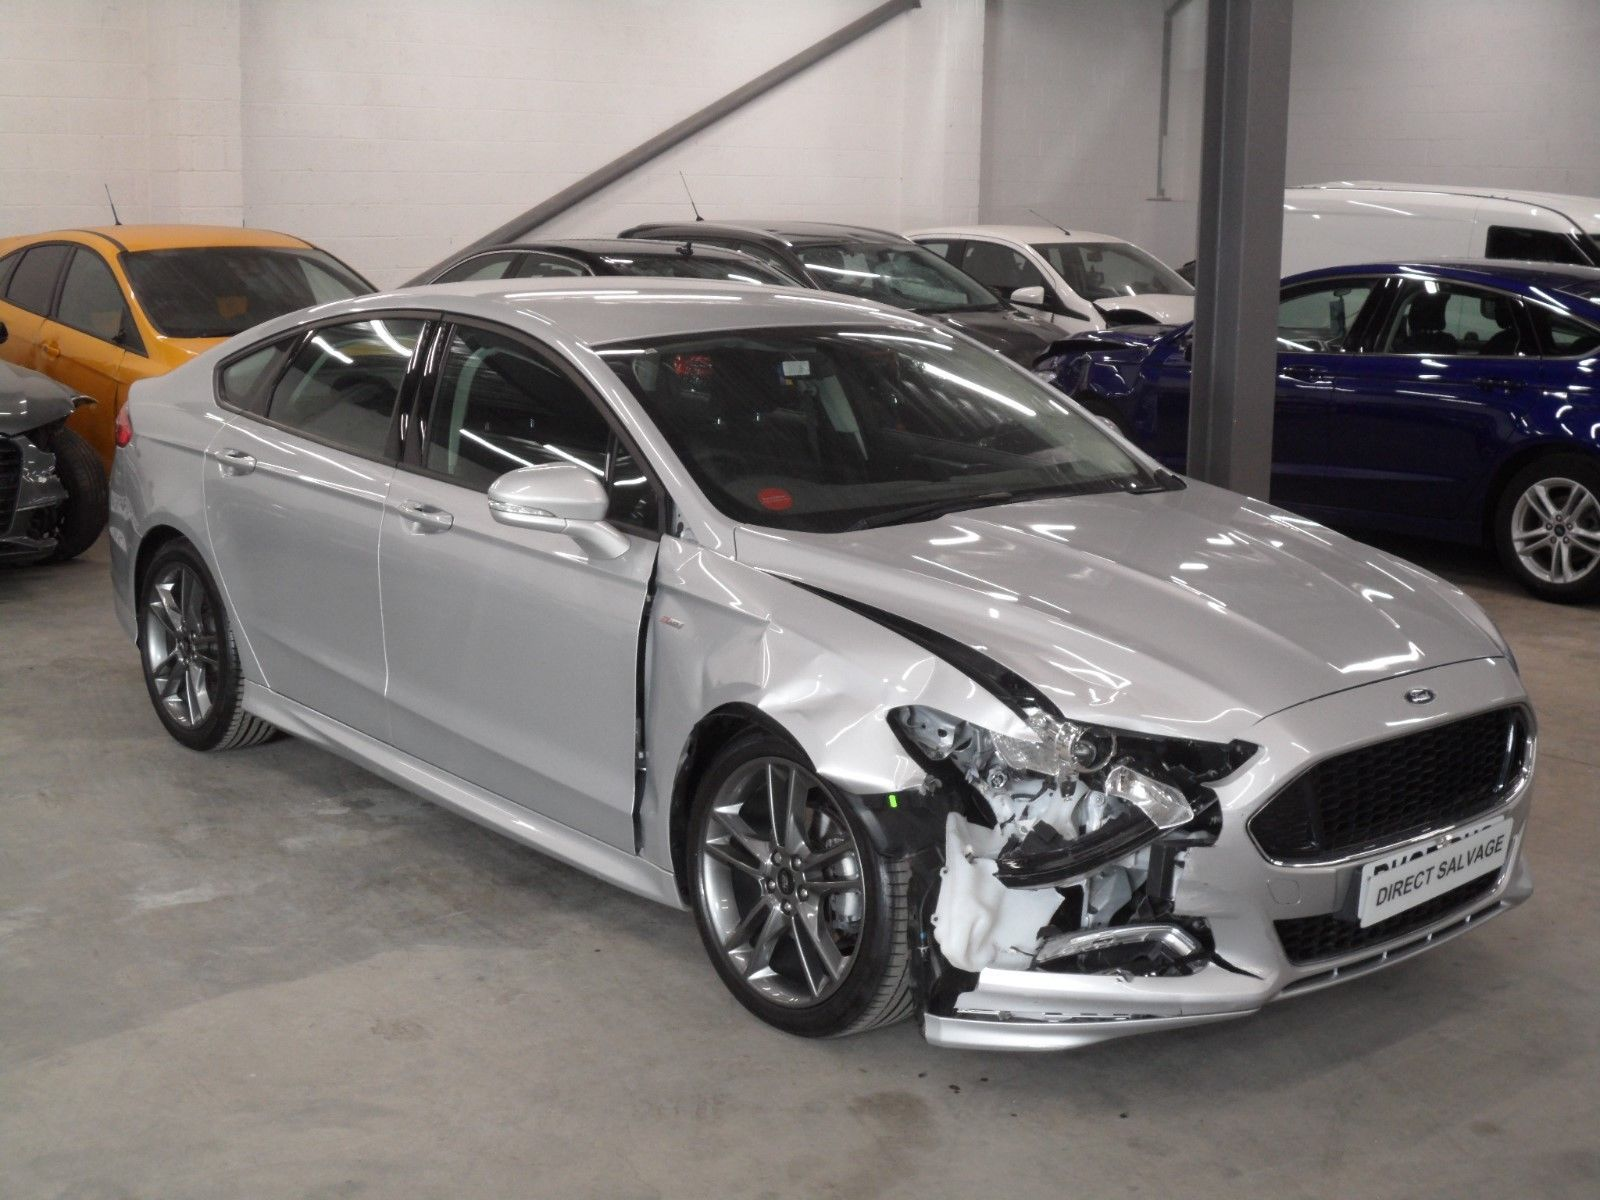 Repairable Cars For Sale >> eBay: 2017 67 REG FORD MONDEO ST-LINE 2.0 TDCI SILVER salvage damaged repairable #carparts # ...